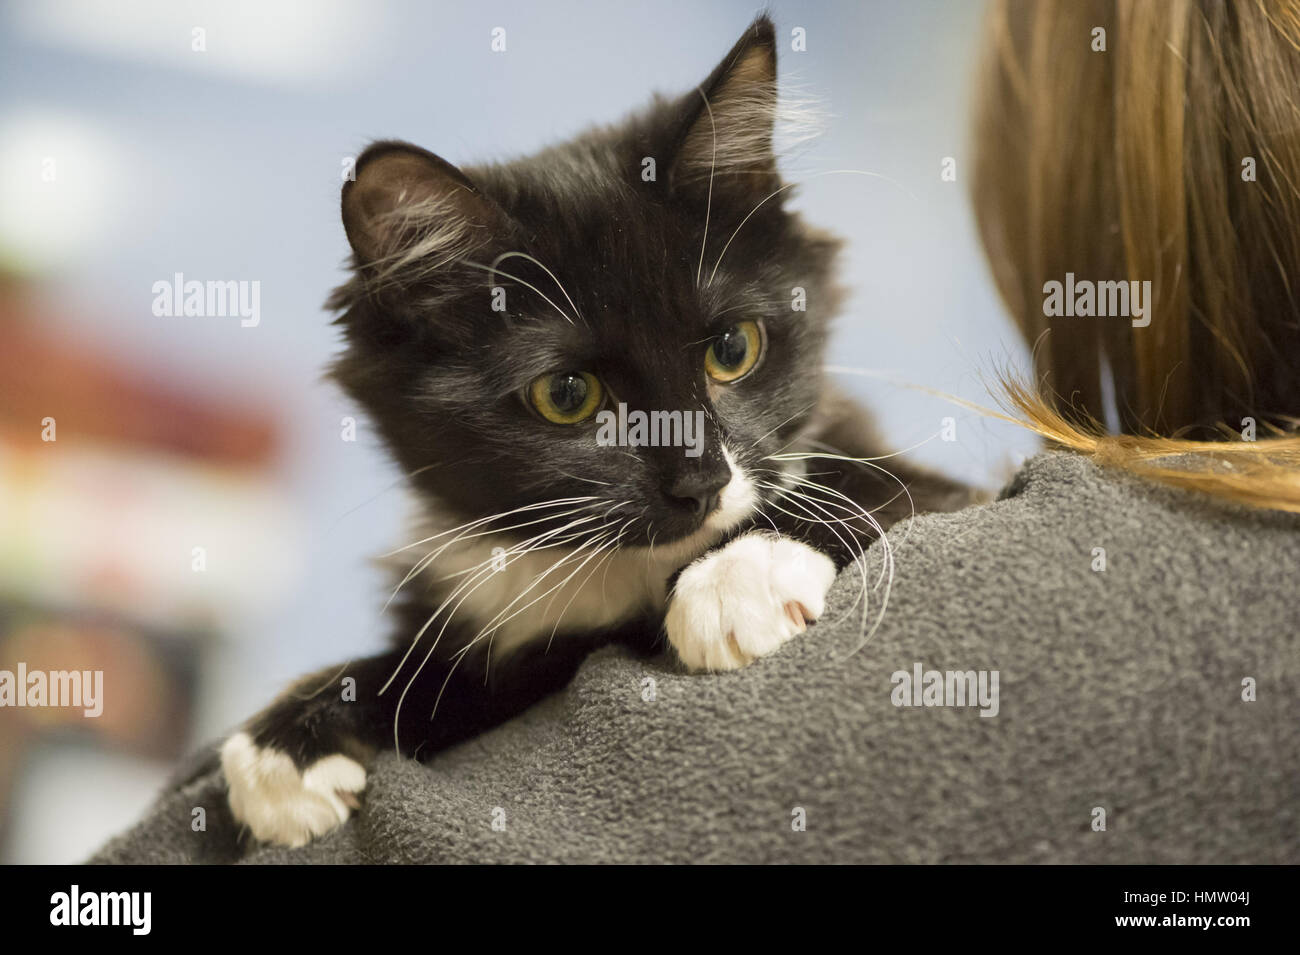 Wantagh, USA. 5th Feb, 2017. Salsa, a five month old black and white domestic female cat is looking around perched - Stock Image